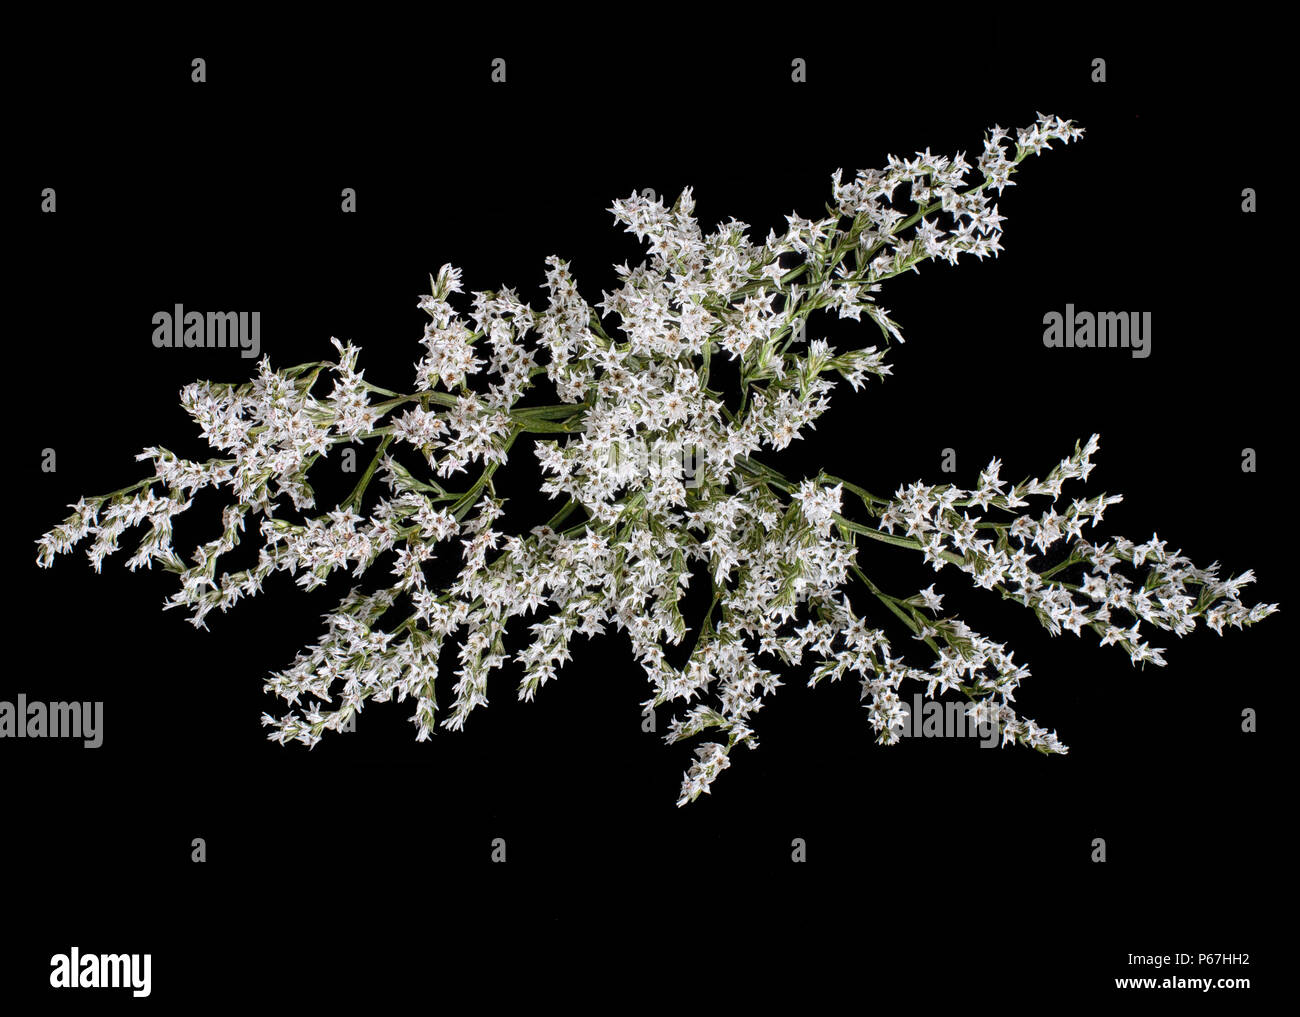 Limonium  dumosum - tartaricum, tiny starry flowers. Variety of statice. Studio isolated on black. - Stock Image